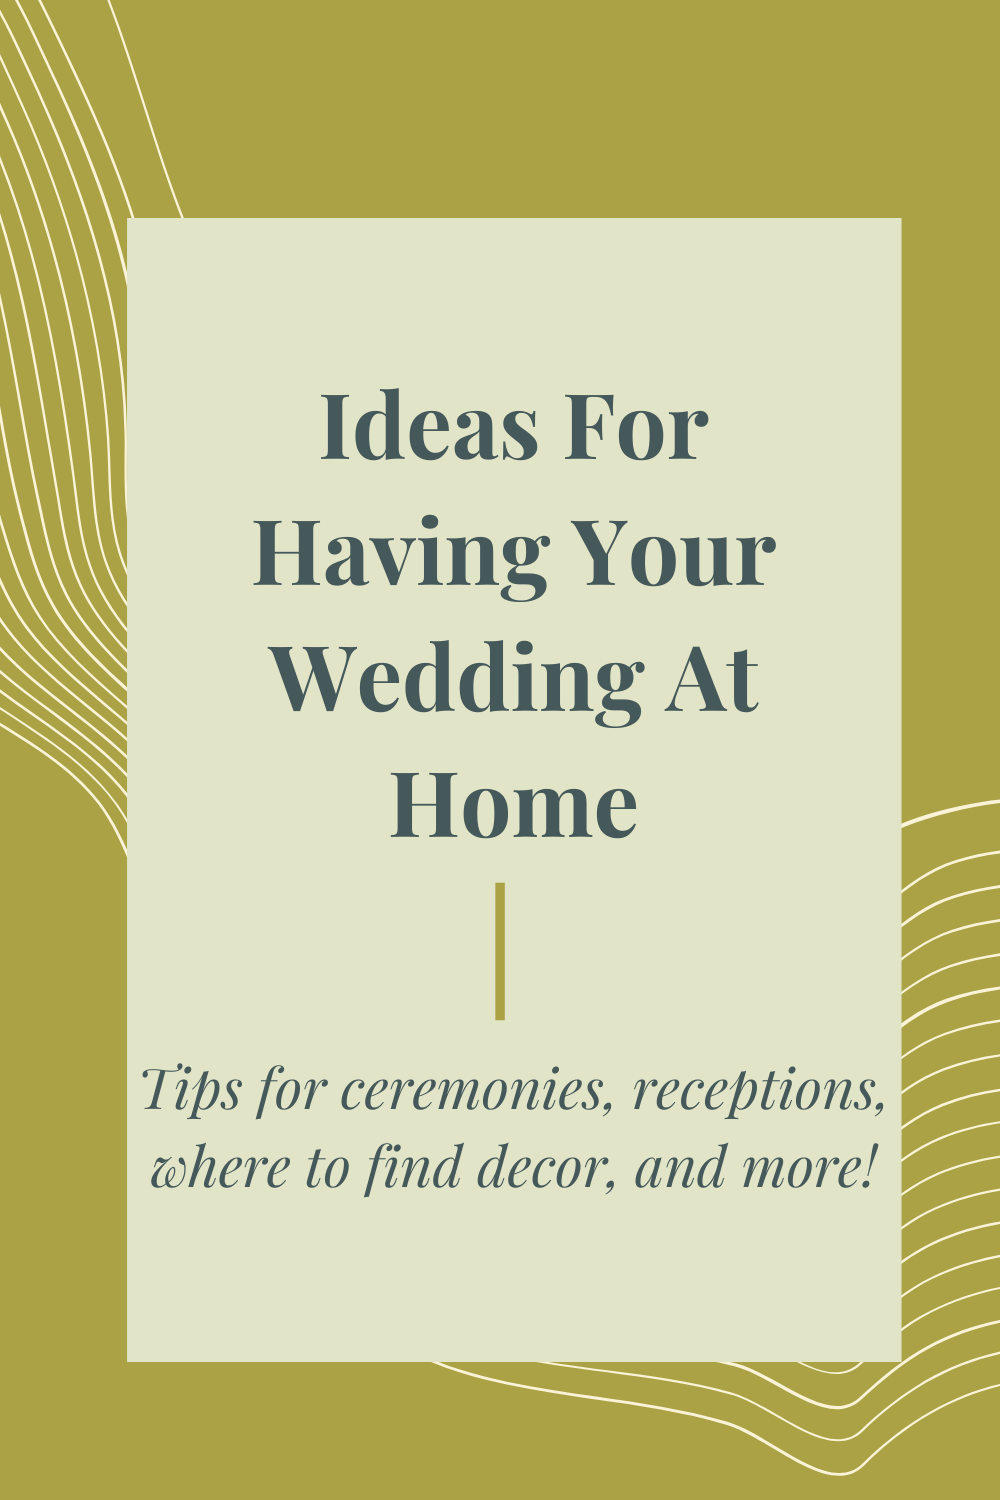 Ideas For Hosting Your Wedding At Home — Madeira Creative